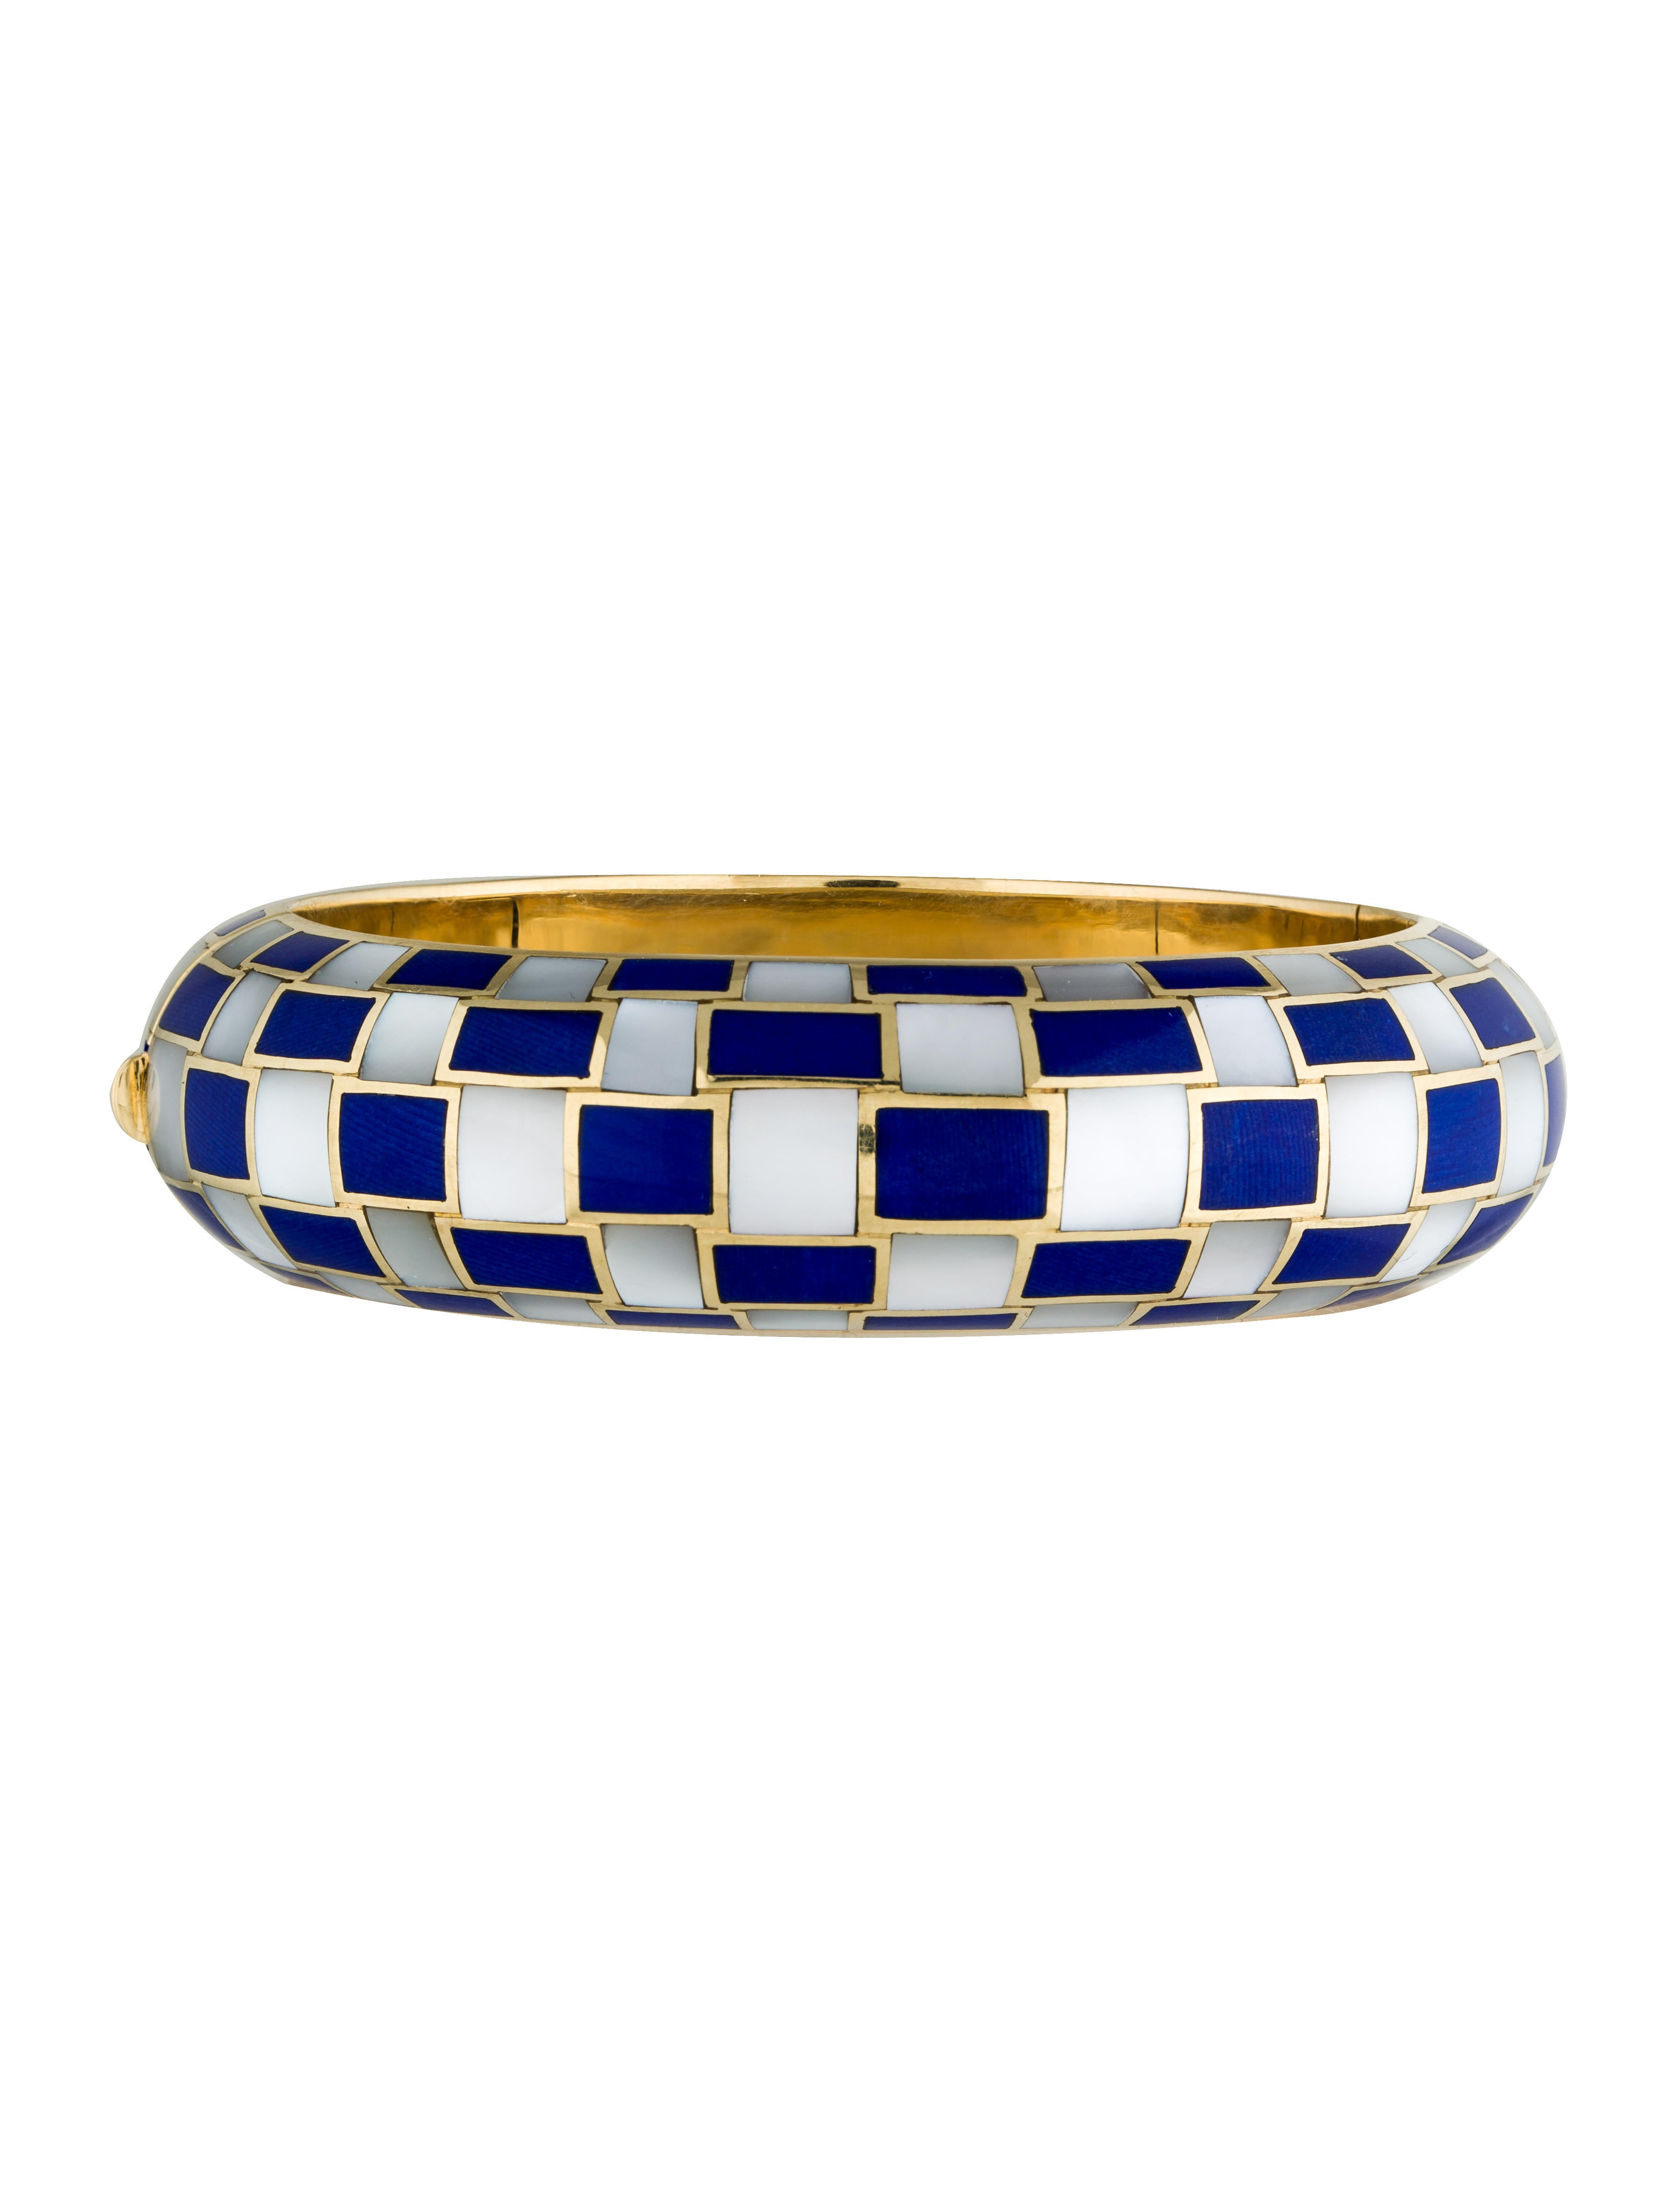 19c6adf9b Tiffany & Co. 18K Mother of Pearl & Dyed Blue Coral Checkerboard ...